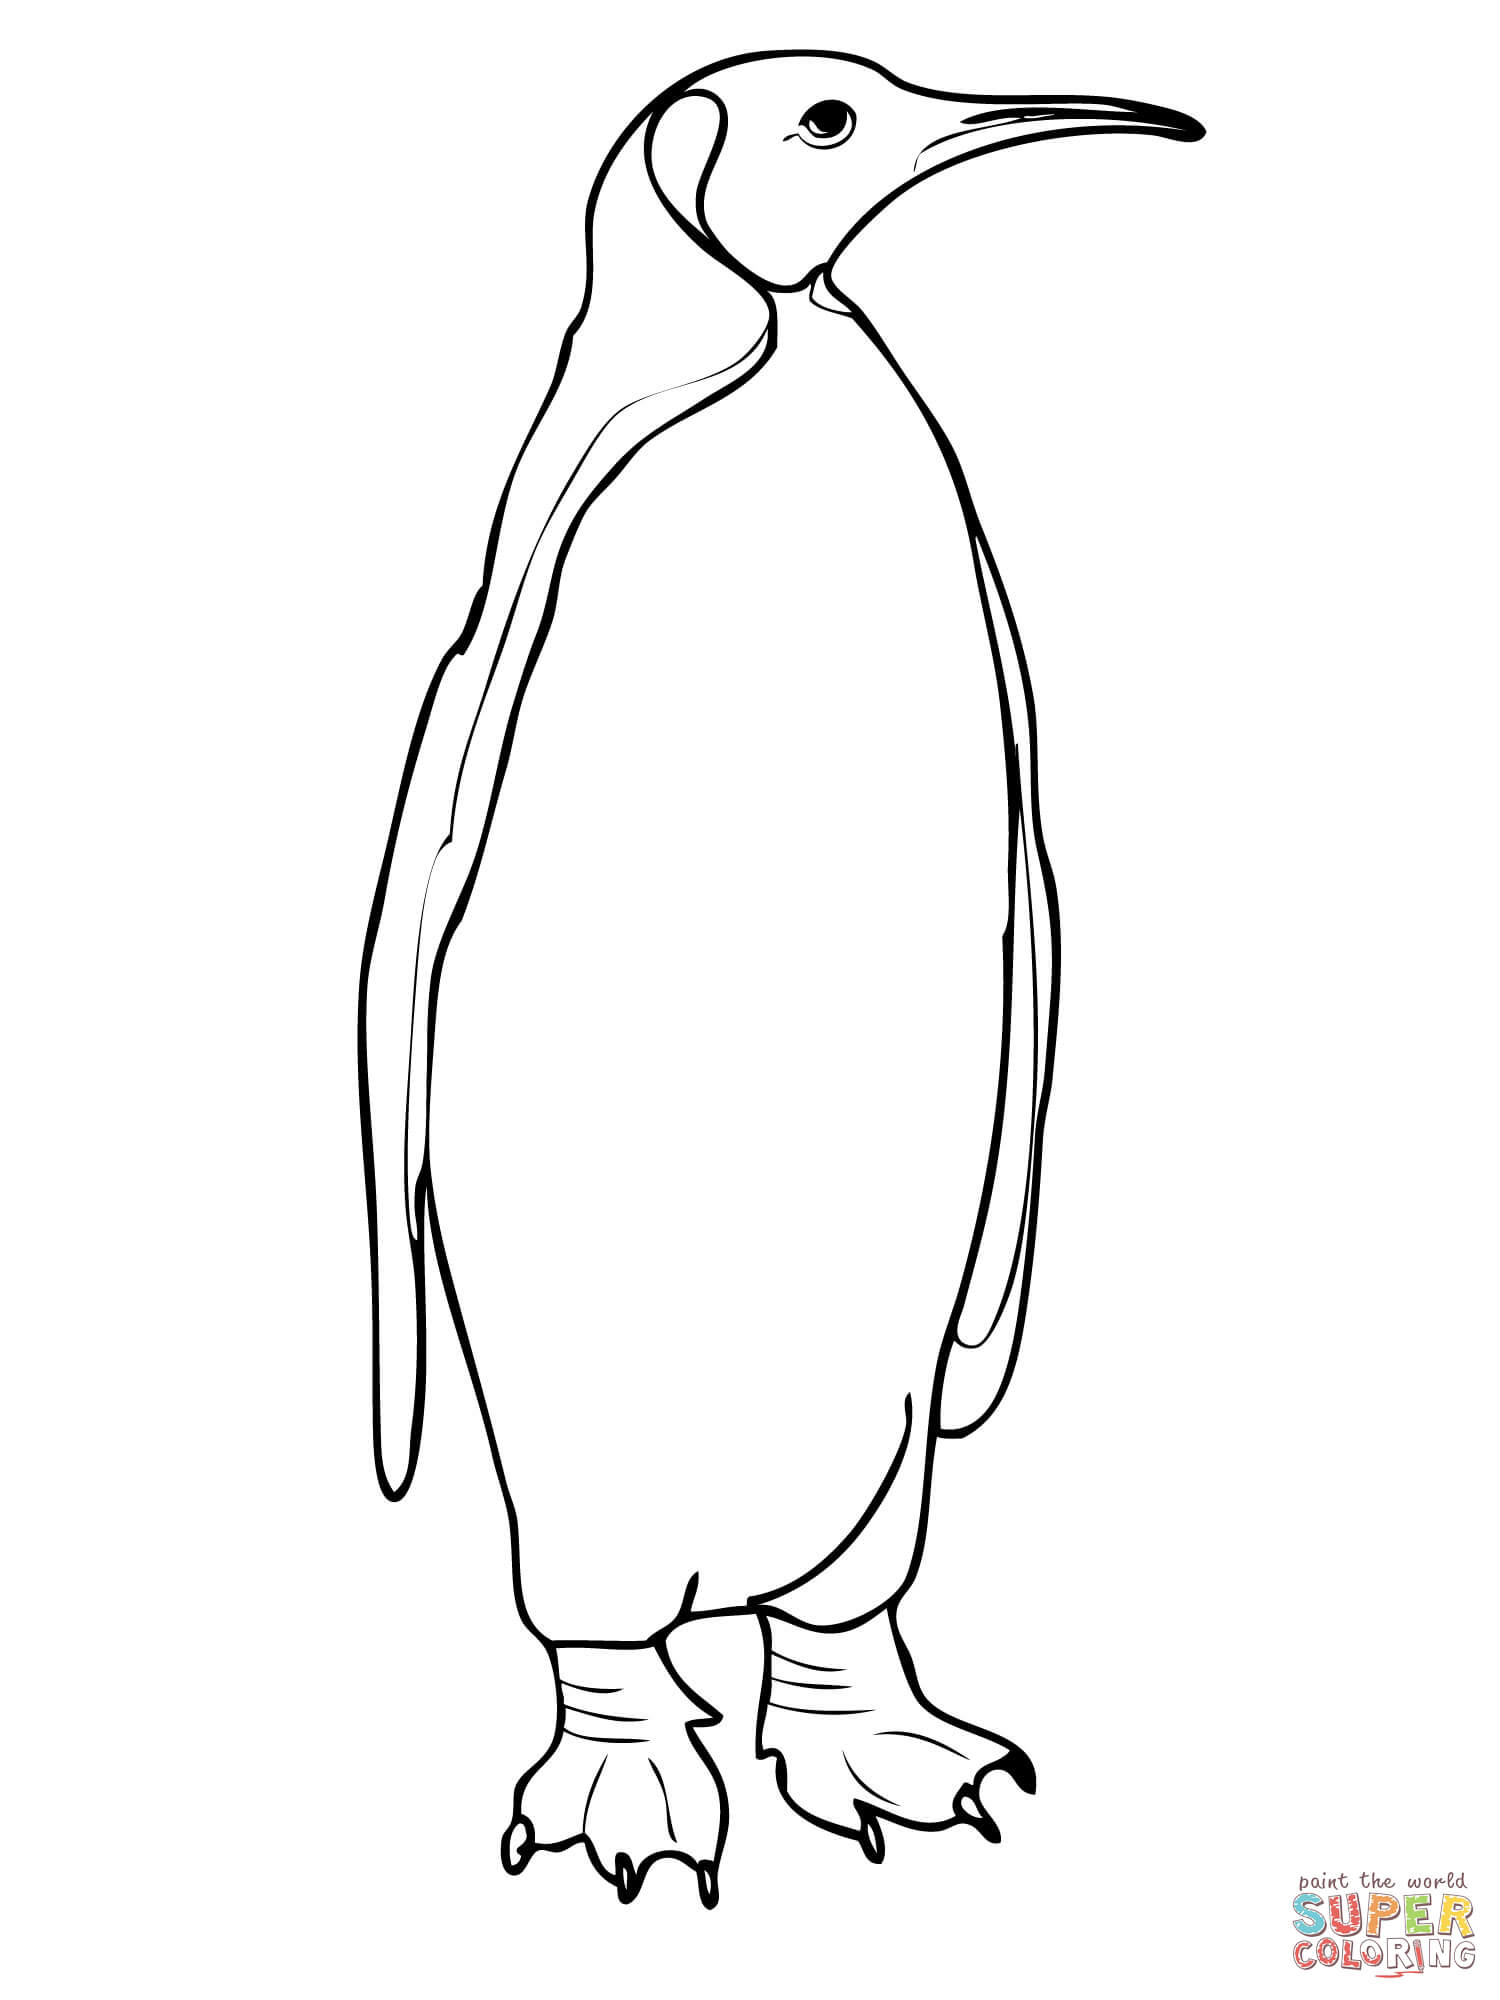 King Emperor Penguins coloring #9, Download drawings